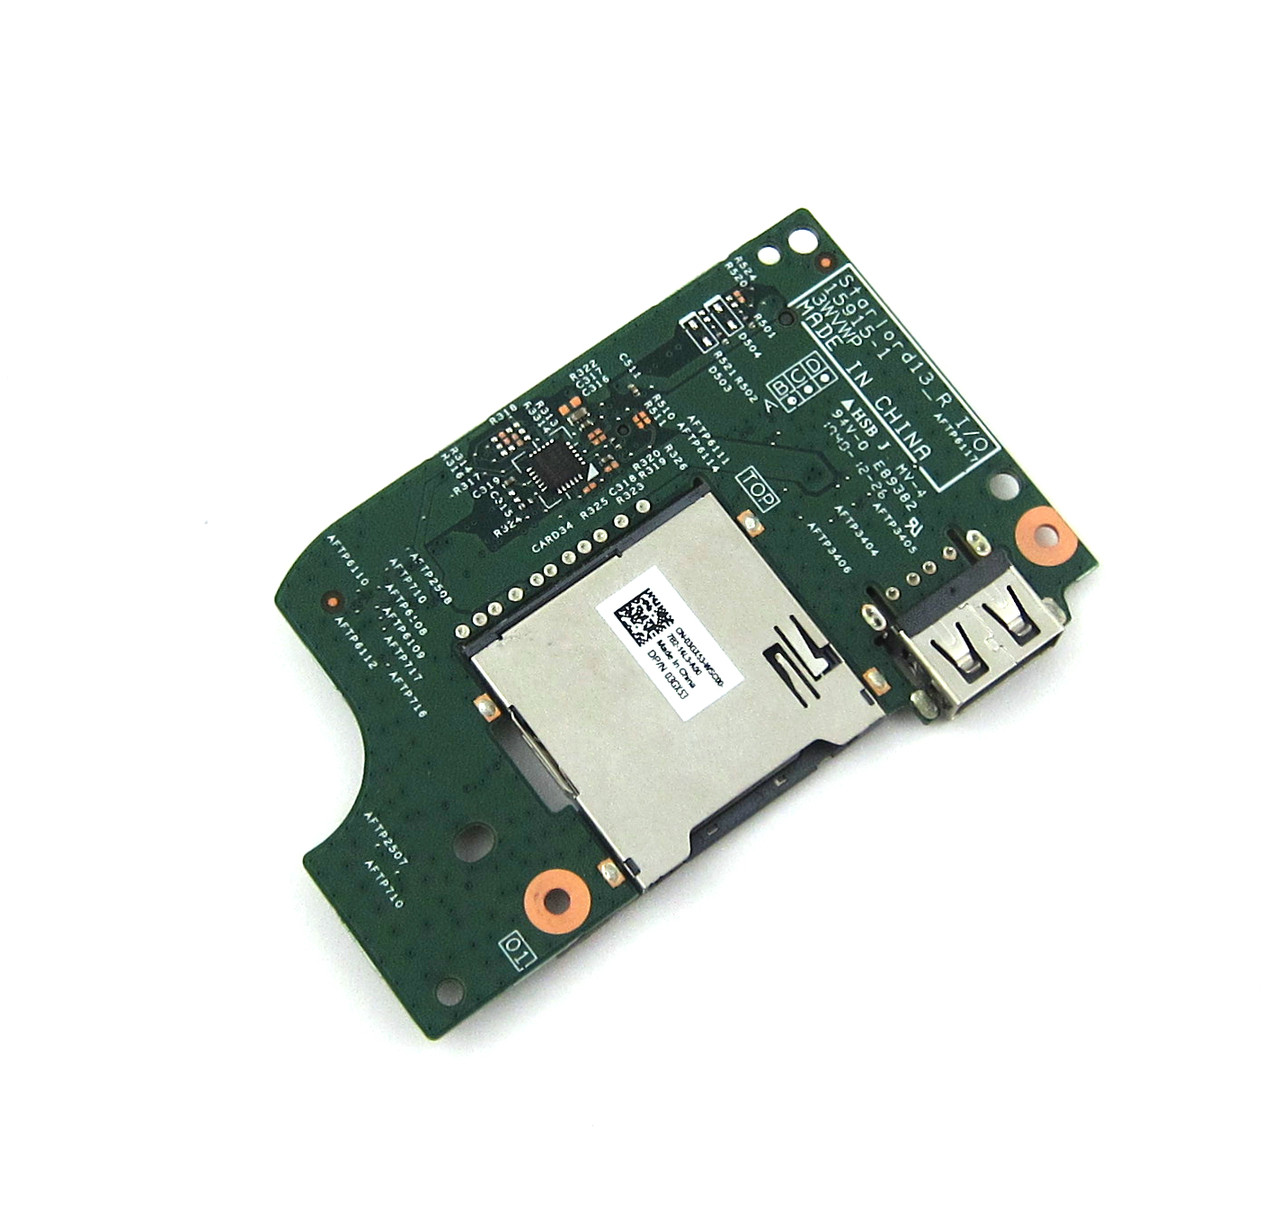 Dell Inspiron 15 5568 / 13 5368  5378 USB / SD Card Reader Circuit Board - 3GX53